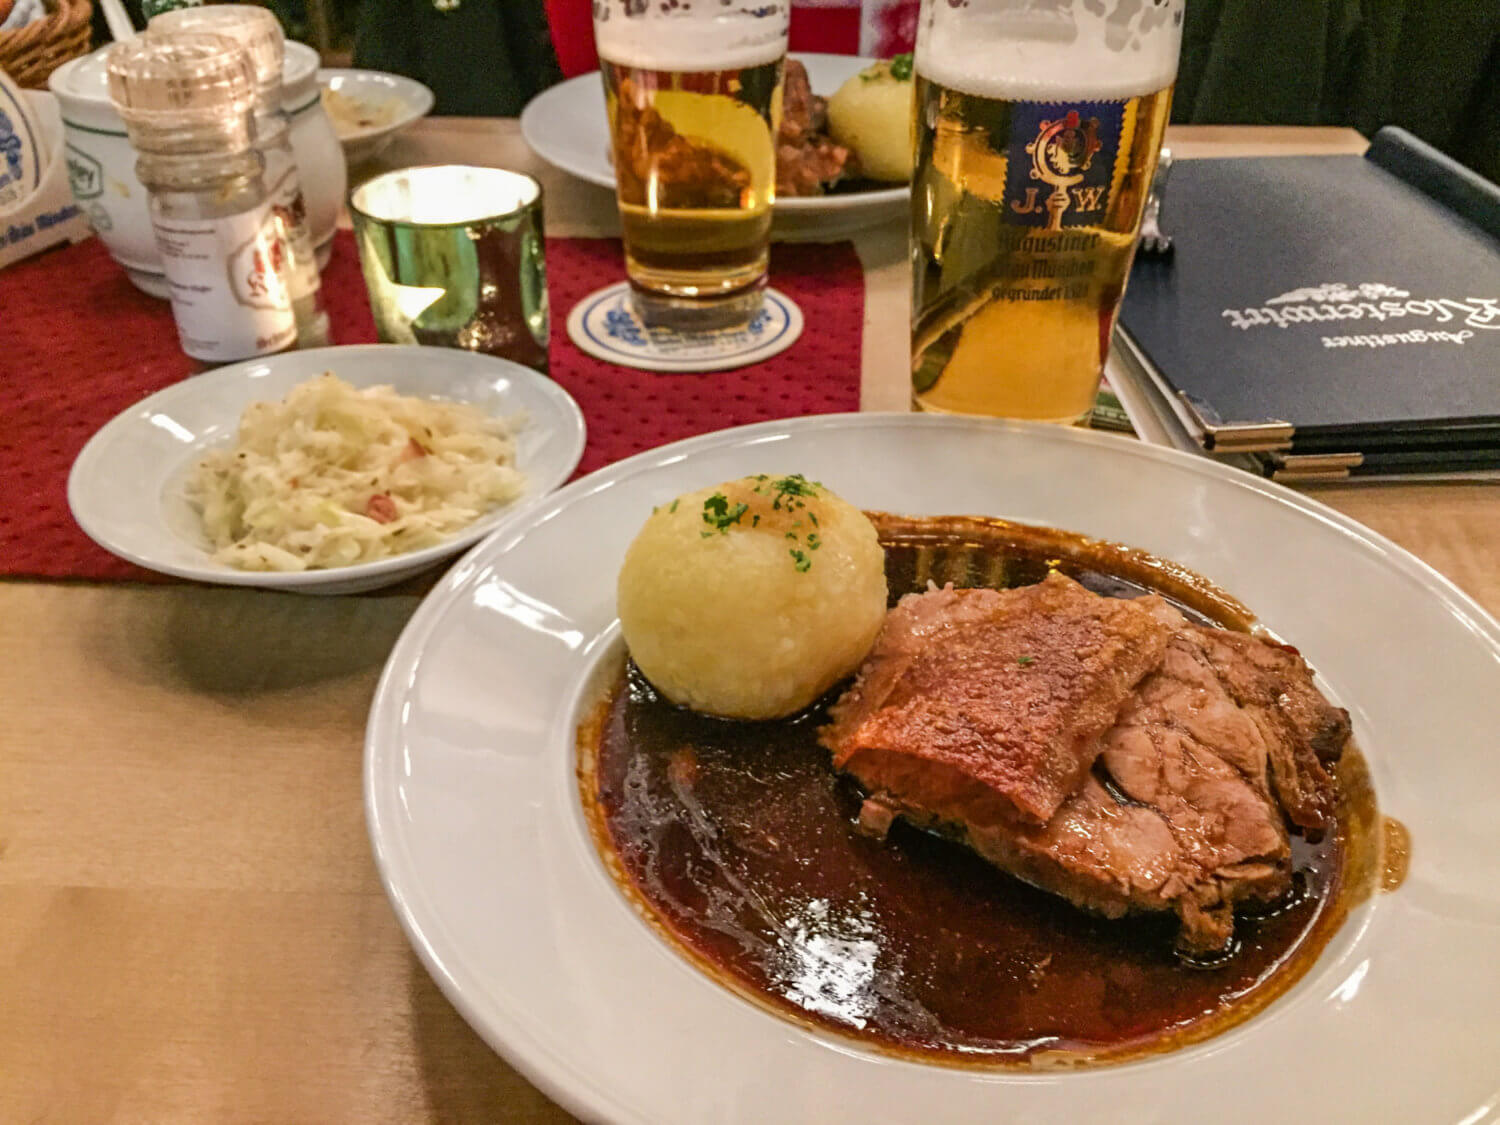 Schweinsbraten and sauerkraut at Augustiner Klosterwirt